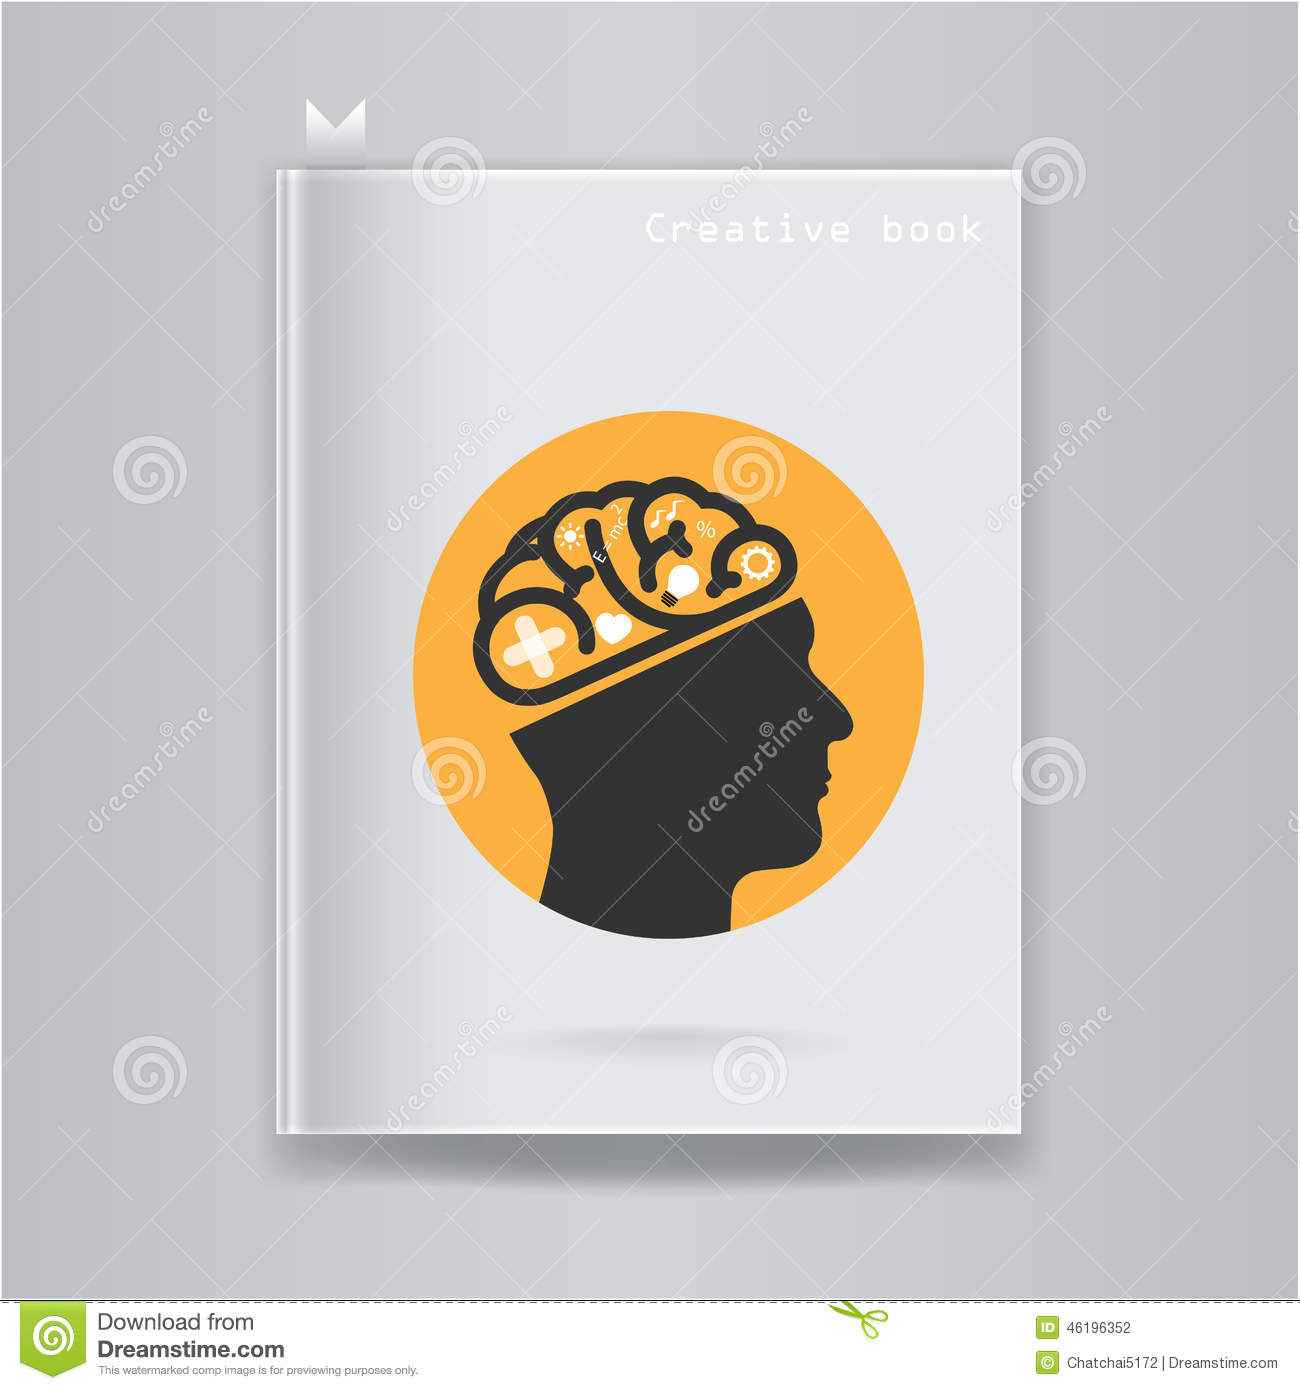 Blank Book Cover Vector Illustration Free : Creative brain idea concept on blank book cover stock